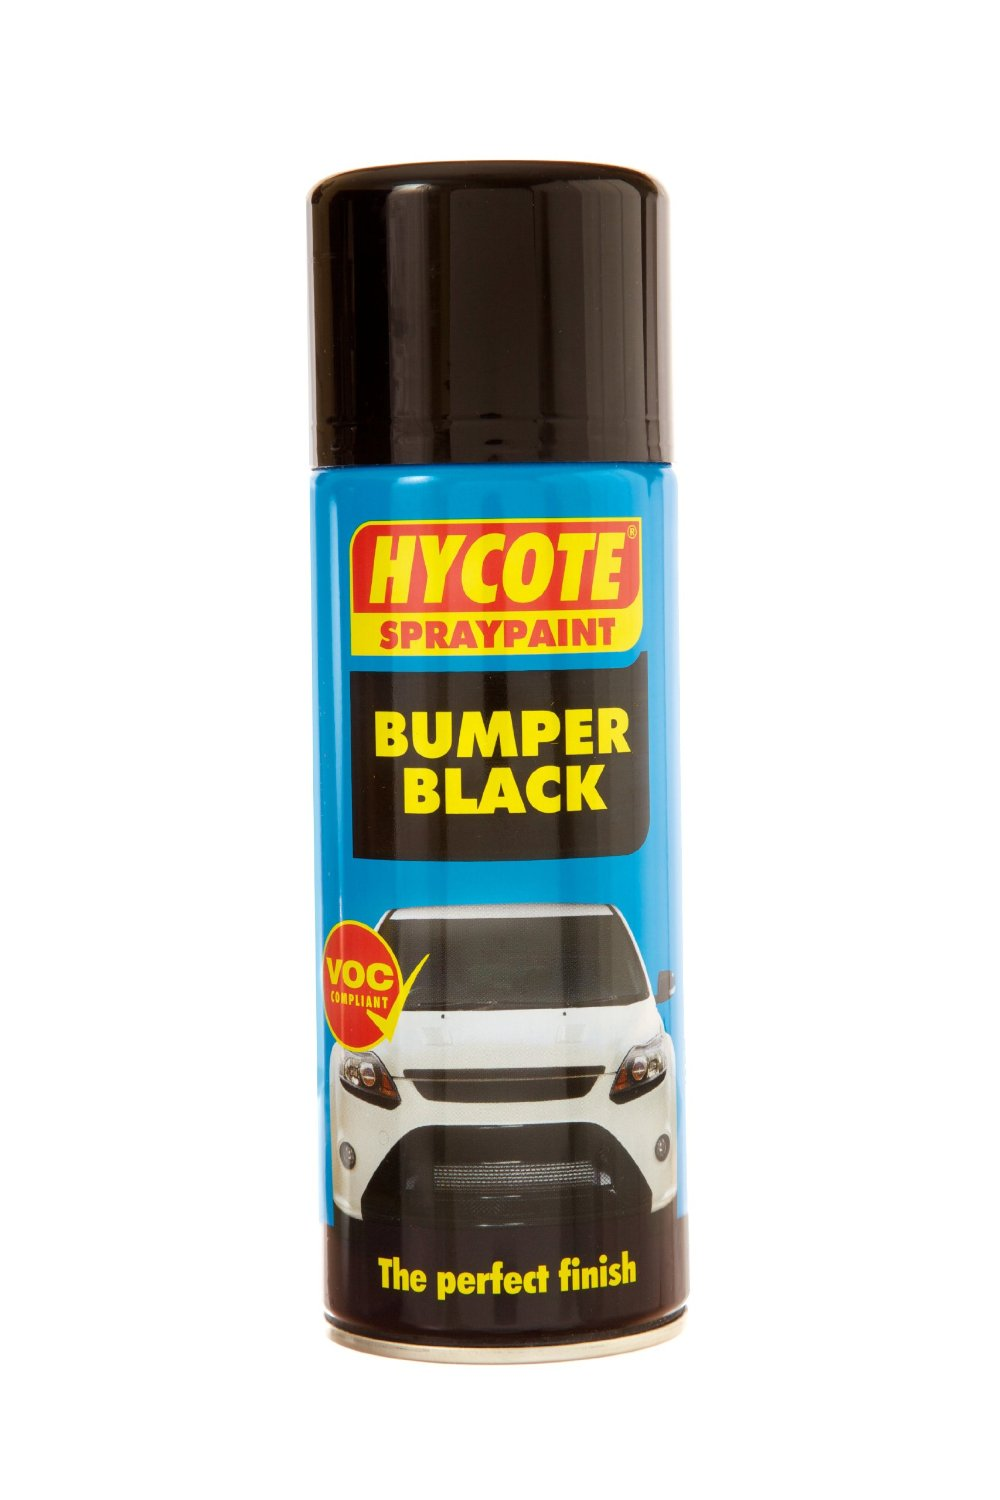 hycote bumper spray paint aerosol 400ml black garage equipment durable. Black Bedroom Furniture Sets. Home Design Ideas